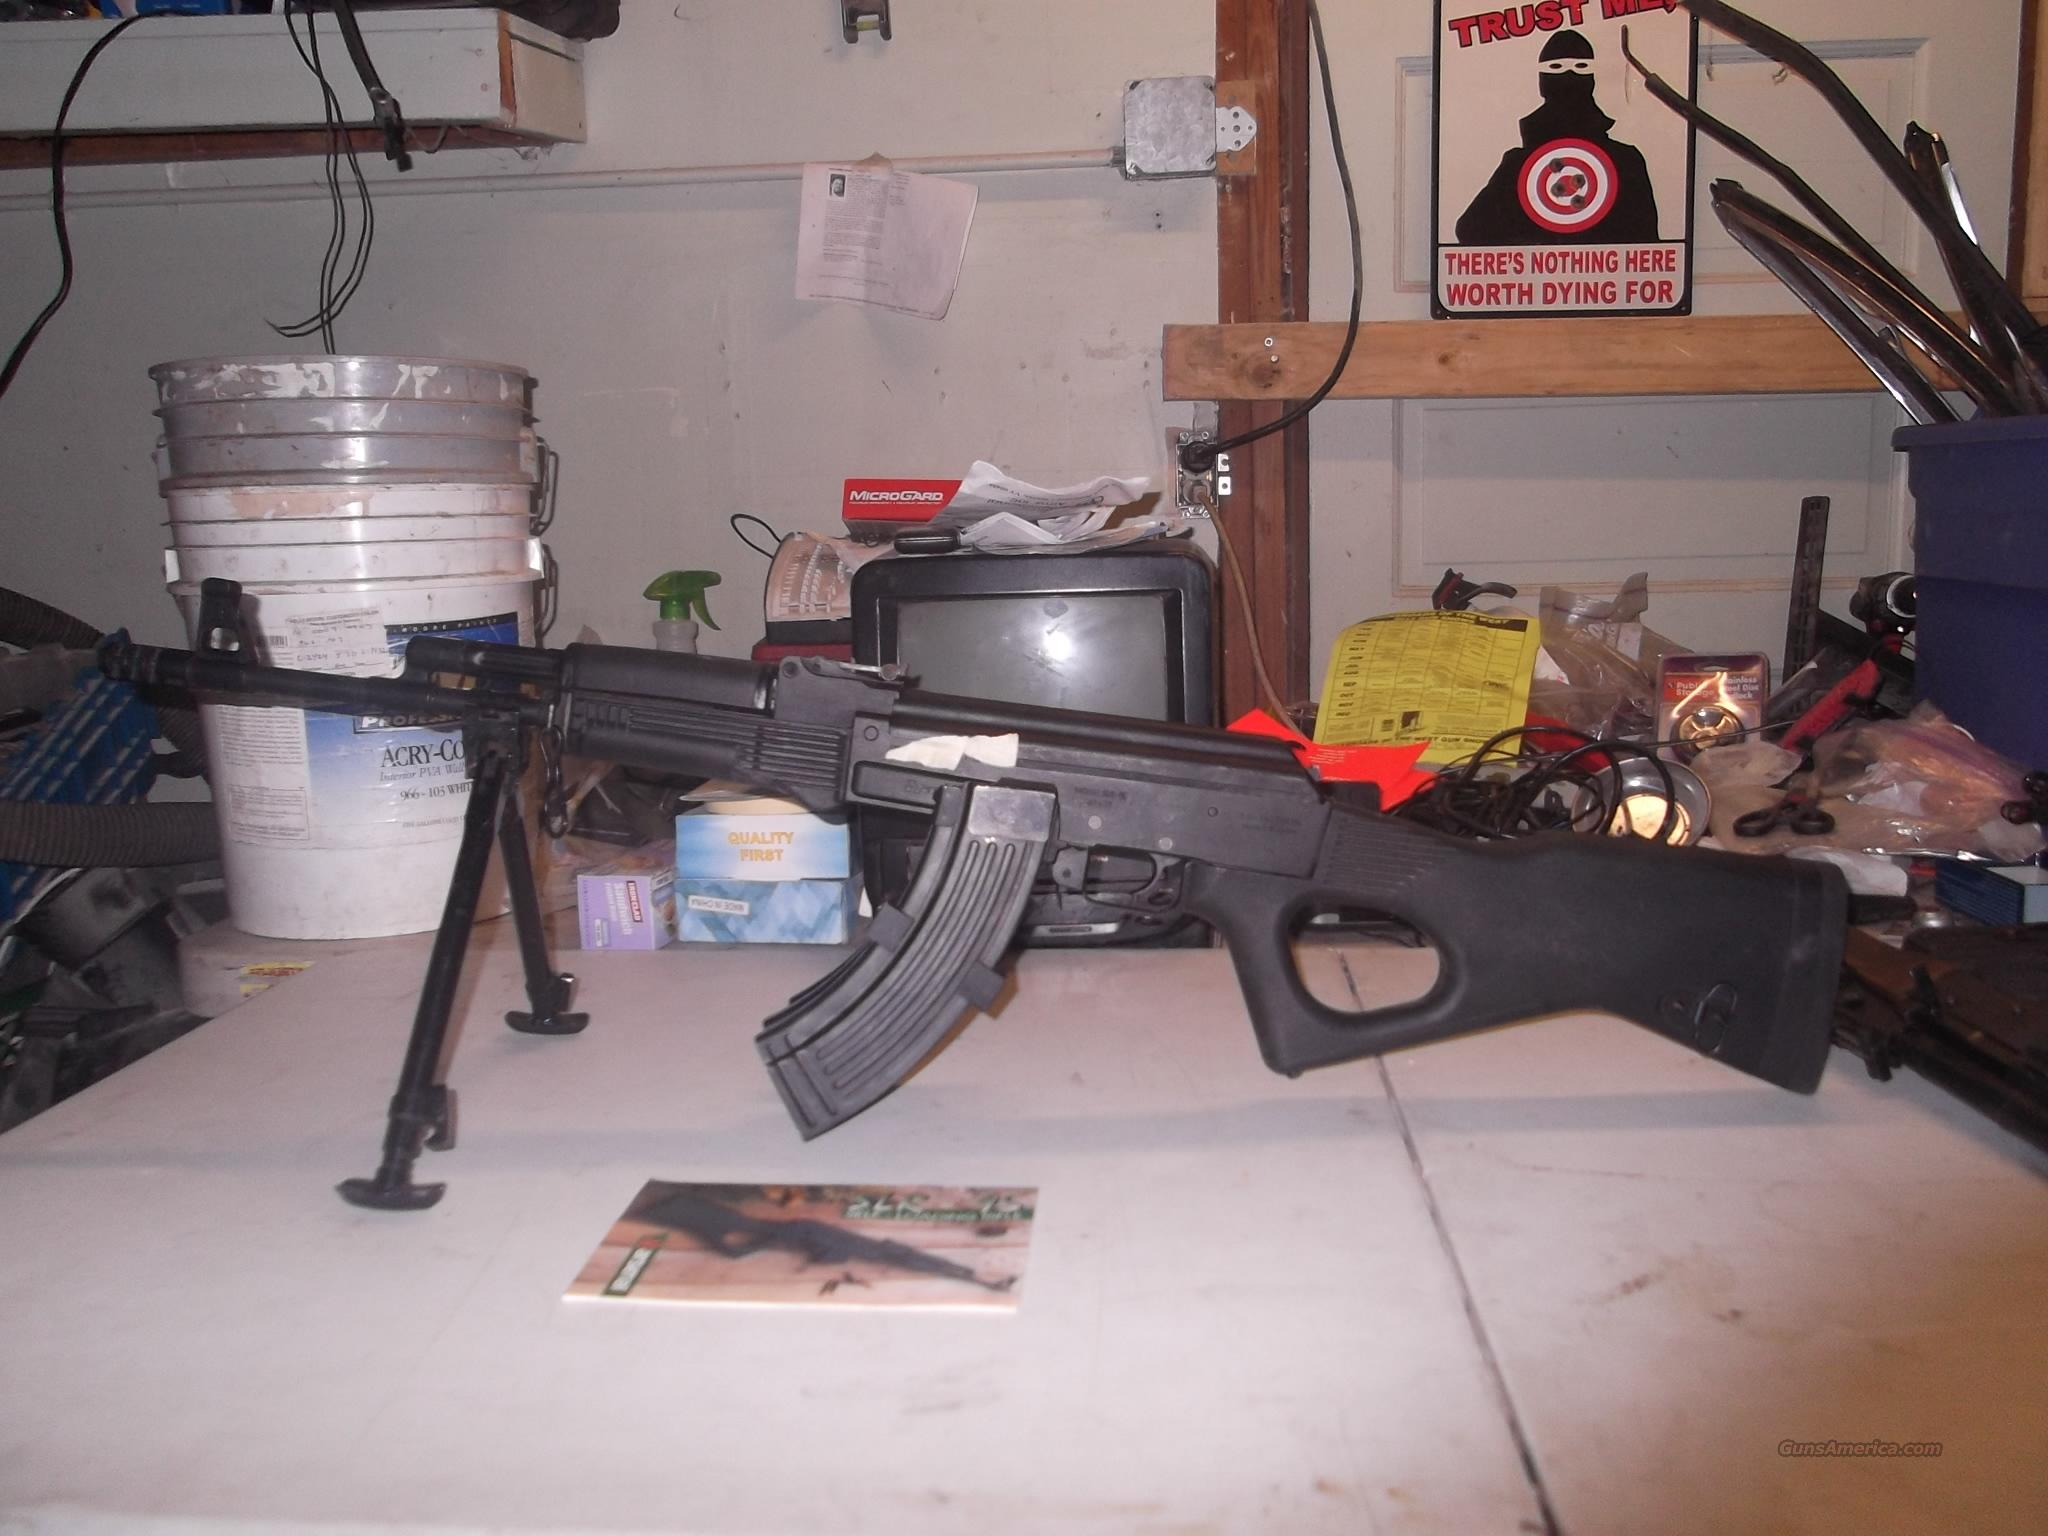 Real bulgarian SLR 95 AK47 RIFLE LIKE NEW Mak 90 $1700 milled receiver best  of the best  not cheap american made rifle sks wasr 10 ar15